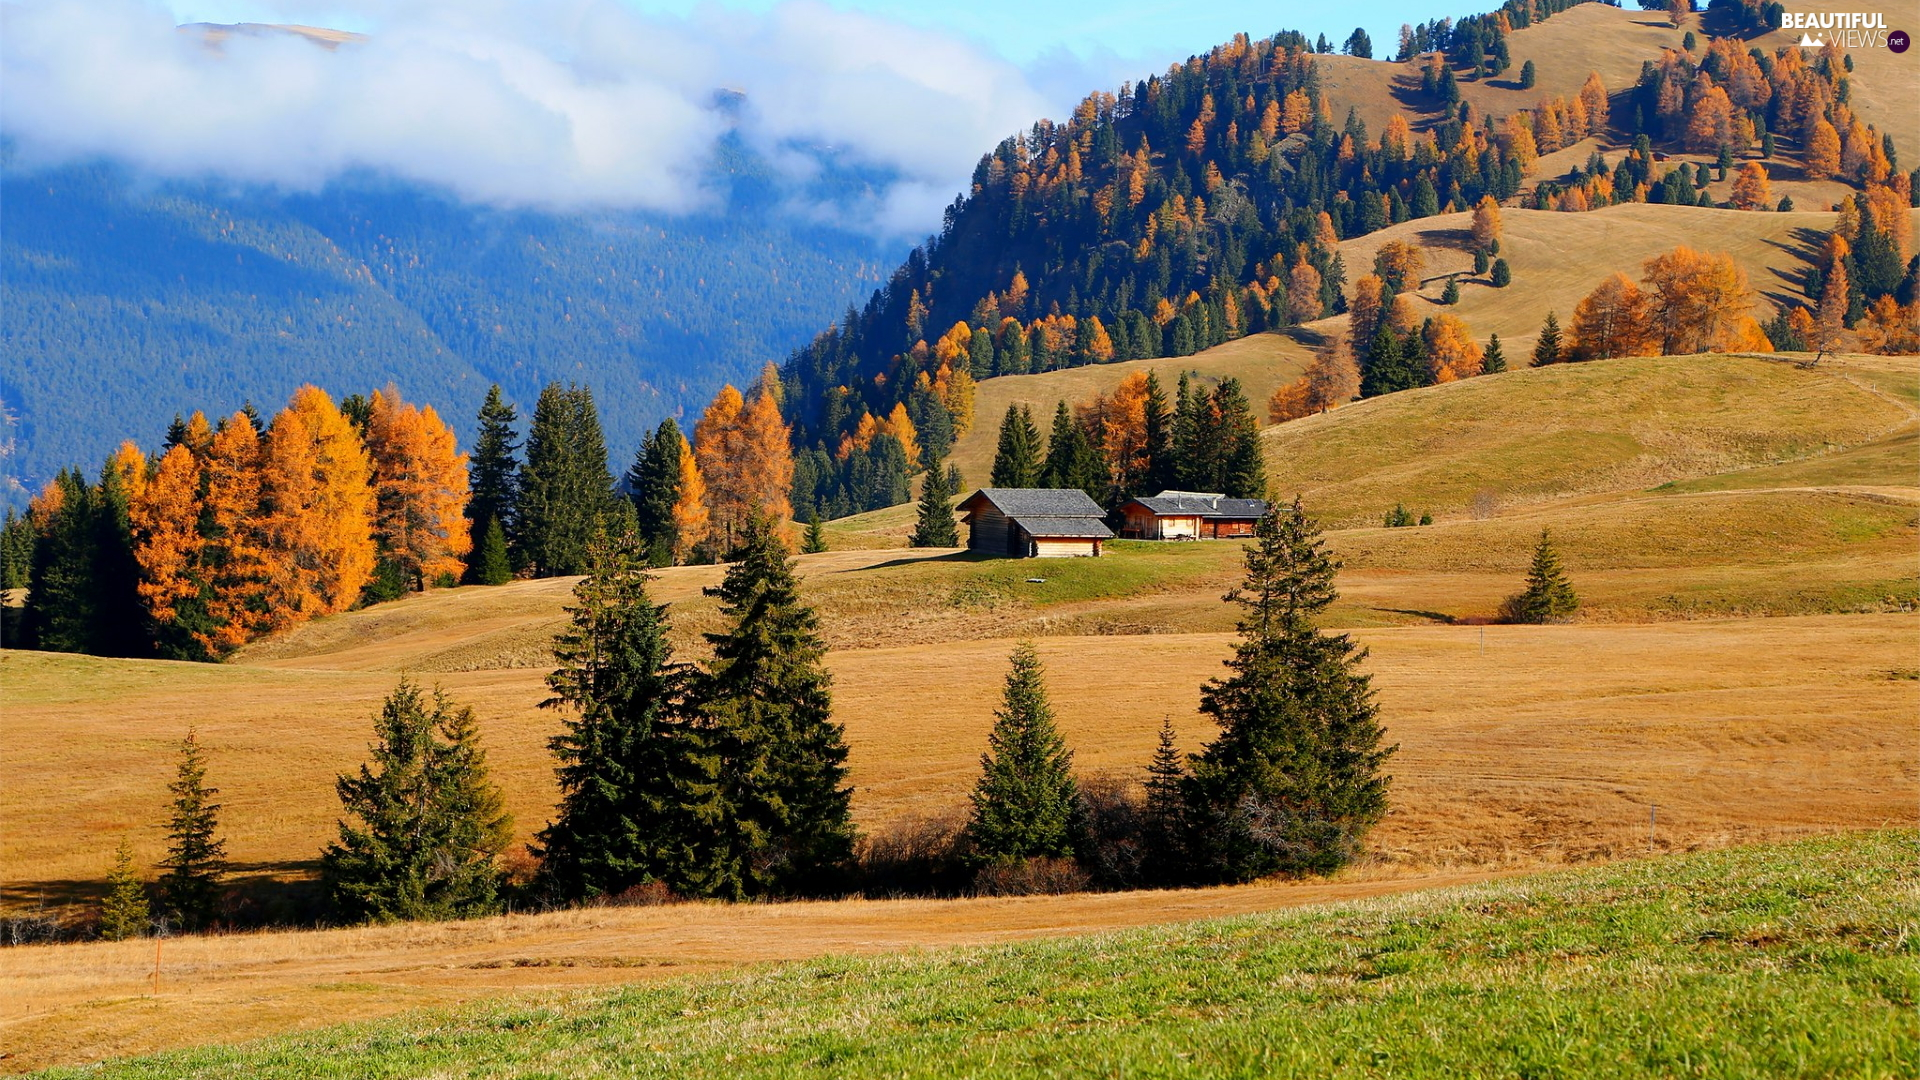 The Hills, Seiser Alm Meadow, field, trees, Trentino-Alto Adige, Italy, Houses, autumn, viewes